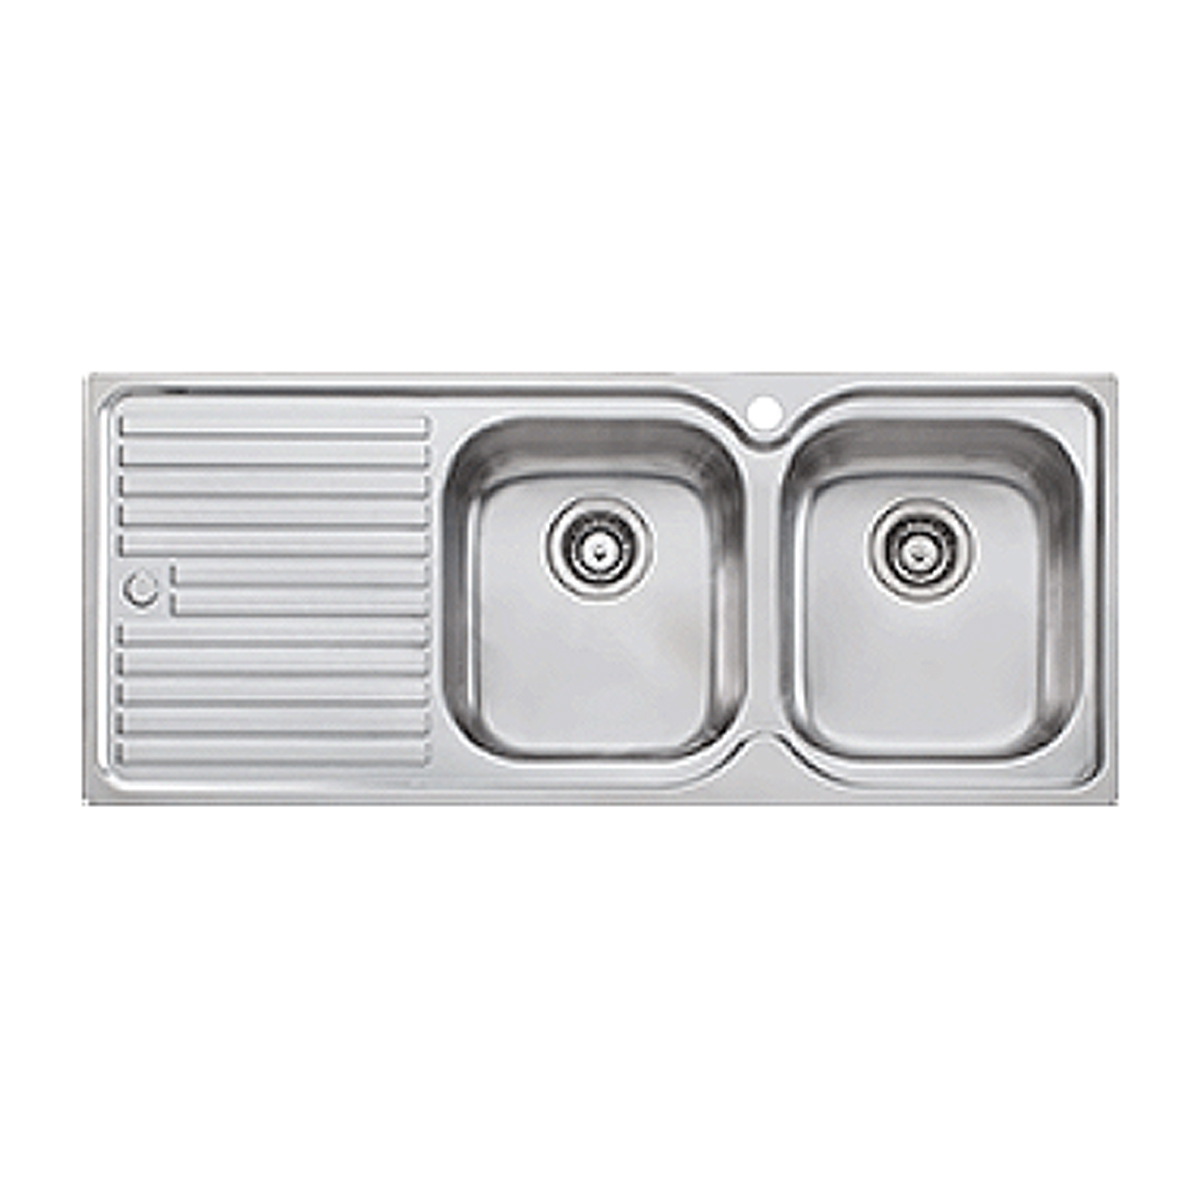 Oliveri EL072 Double Bowl Stainless Steel Sink 61501